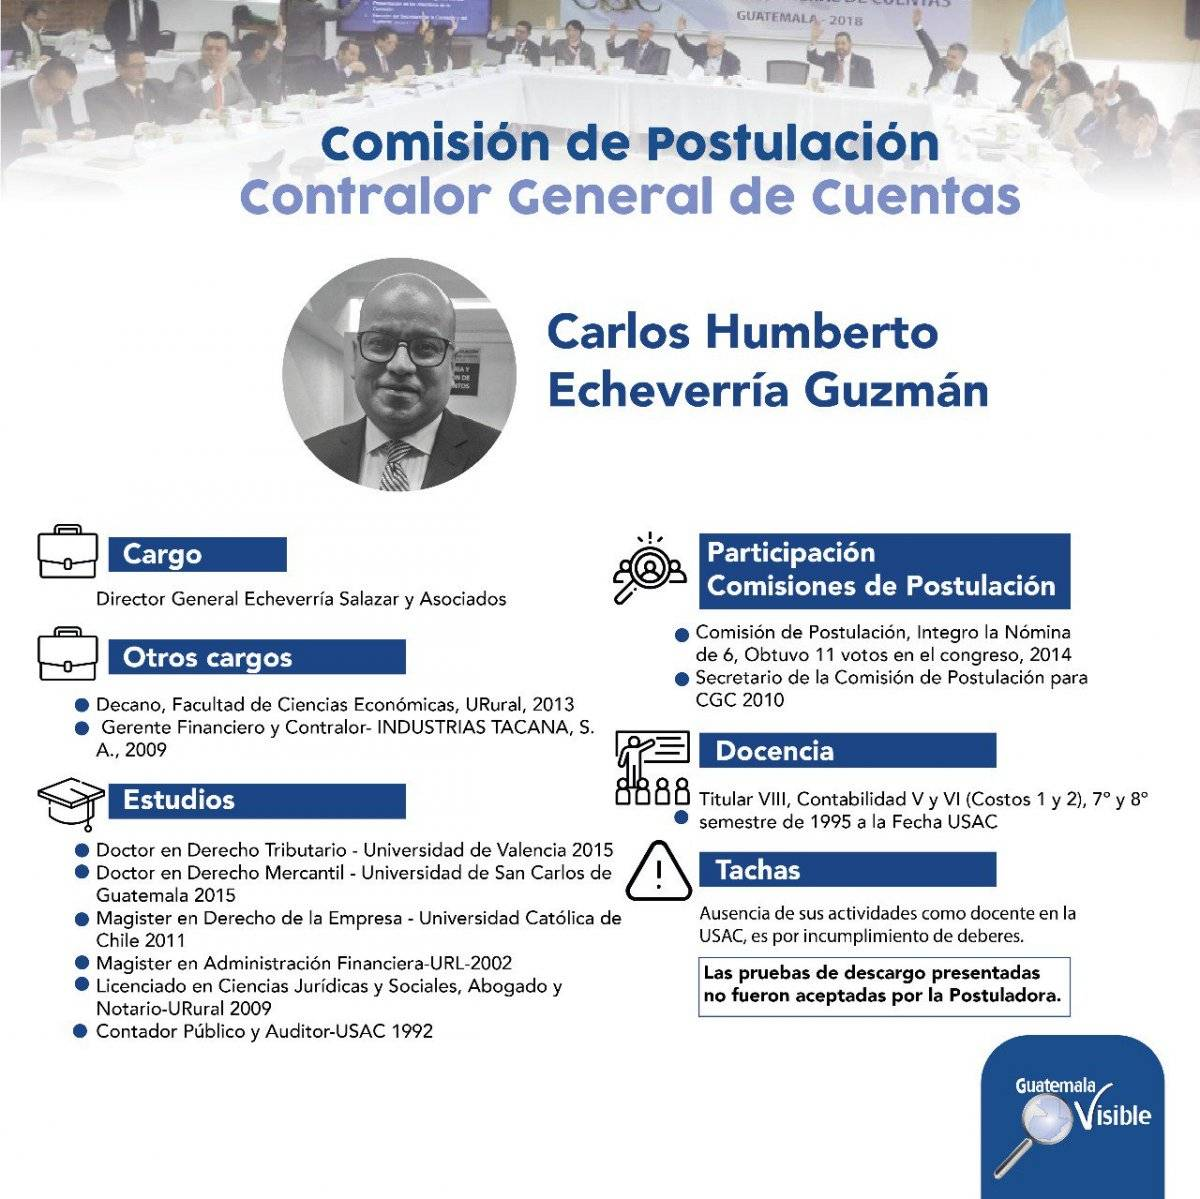 Foto: Guatevisible